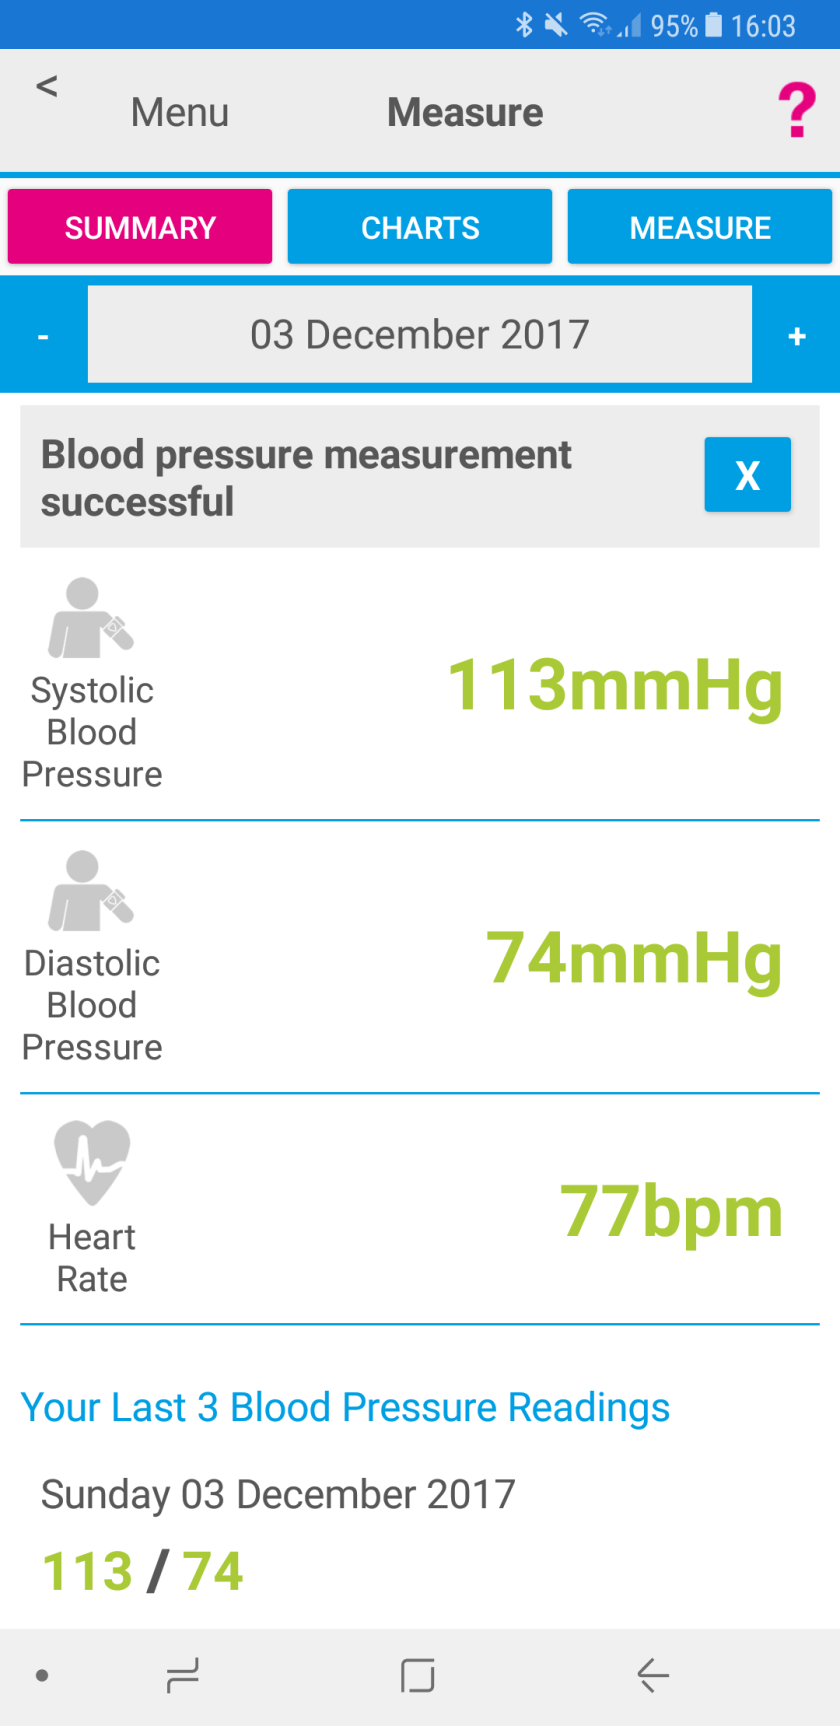 Screenshot of Activ8rlives app showing blood pressure and heart rate results.